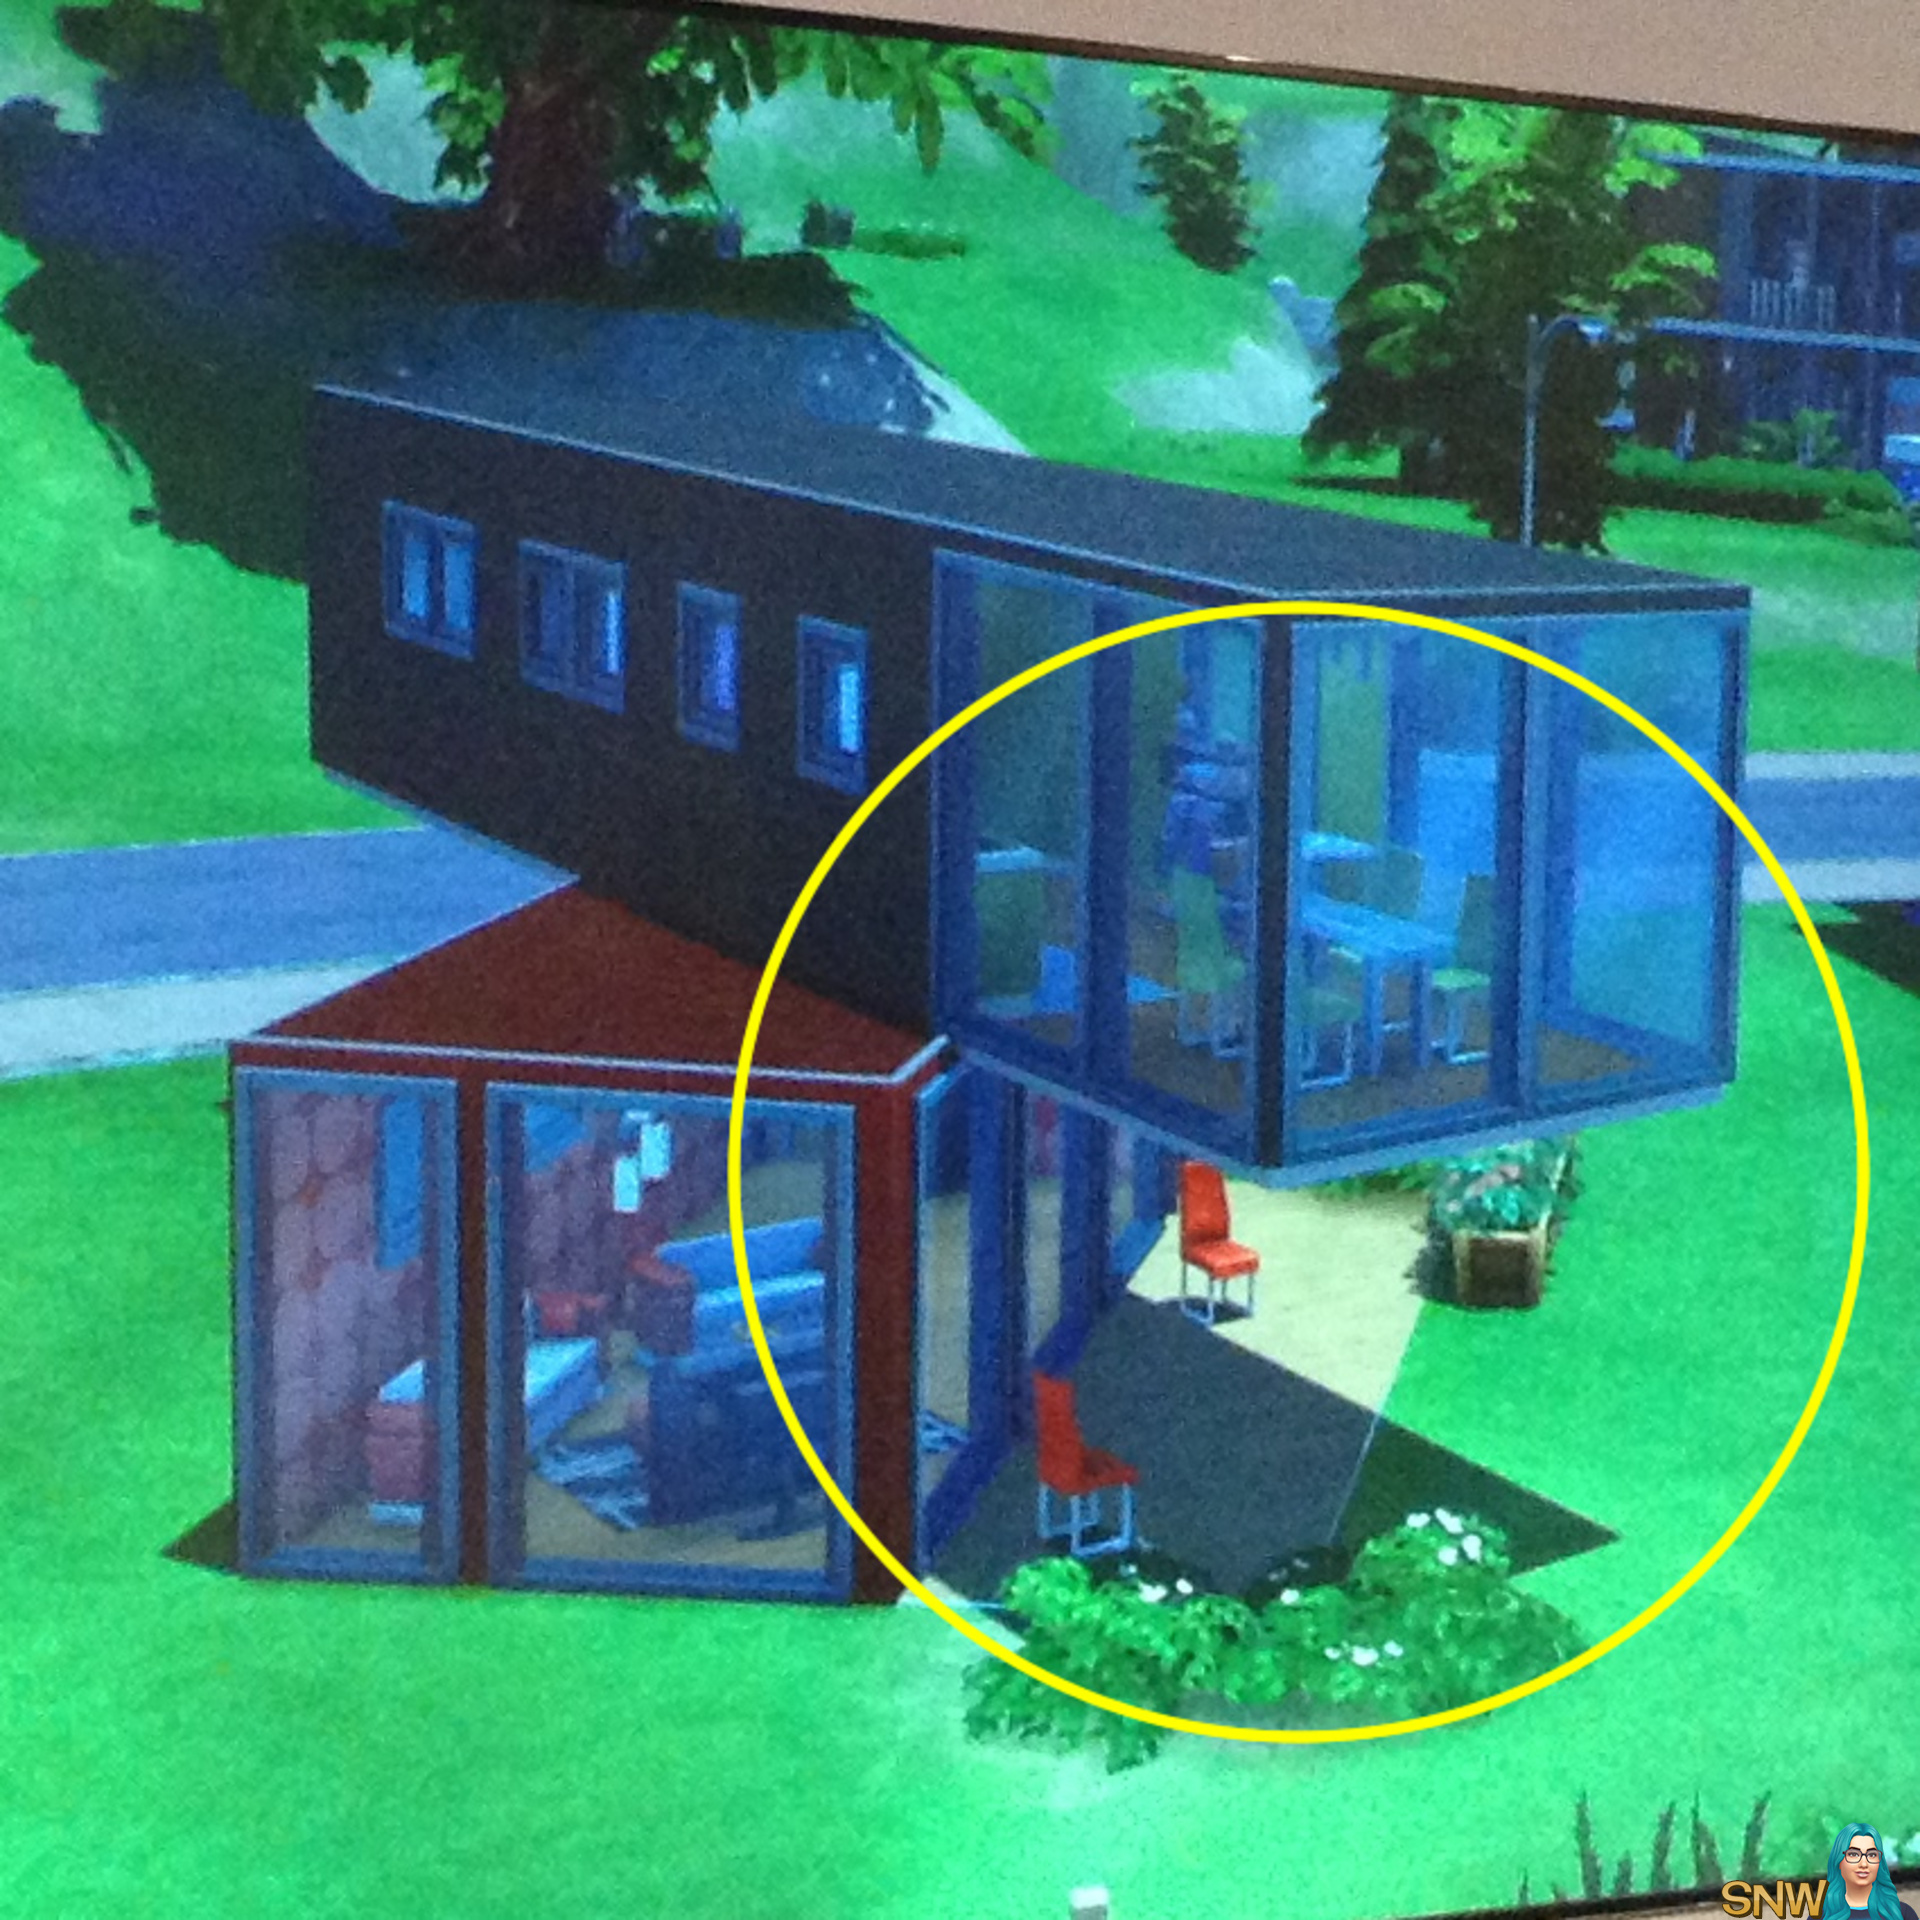 Sims Camp The Sims 4 Build Mode Snw Simsnetwork Com